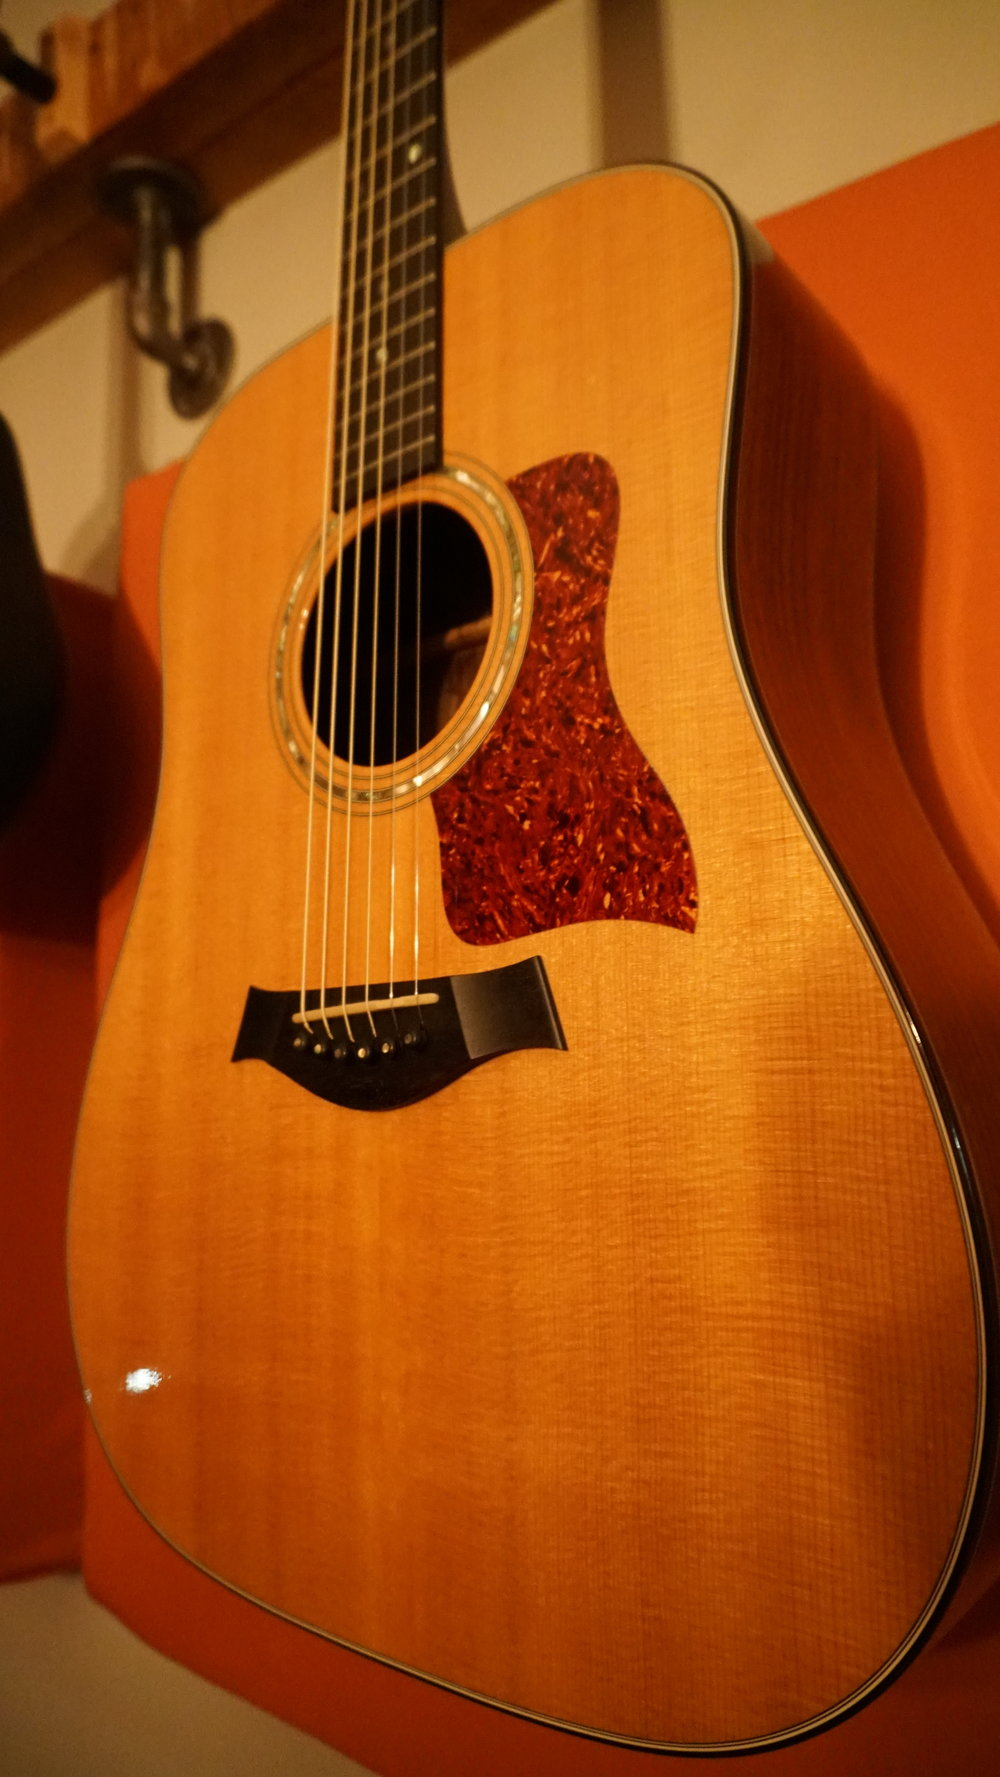 Taylor 710 dreadnought